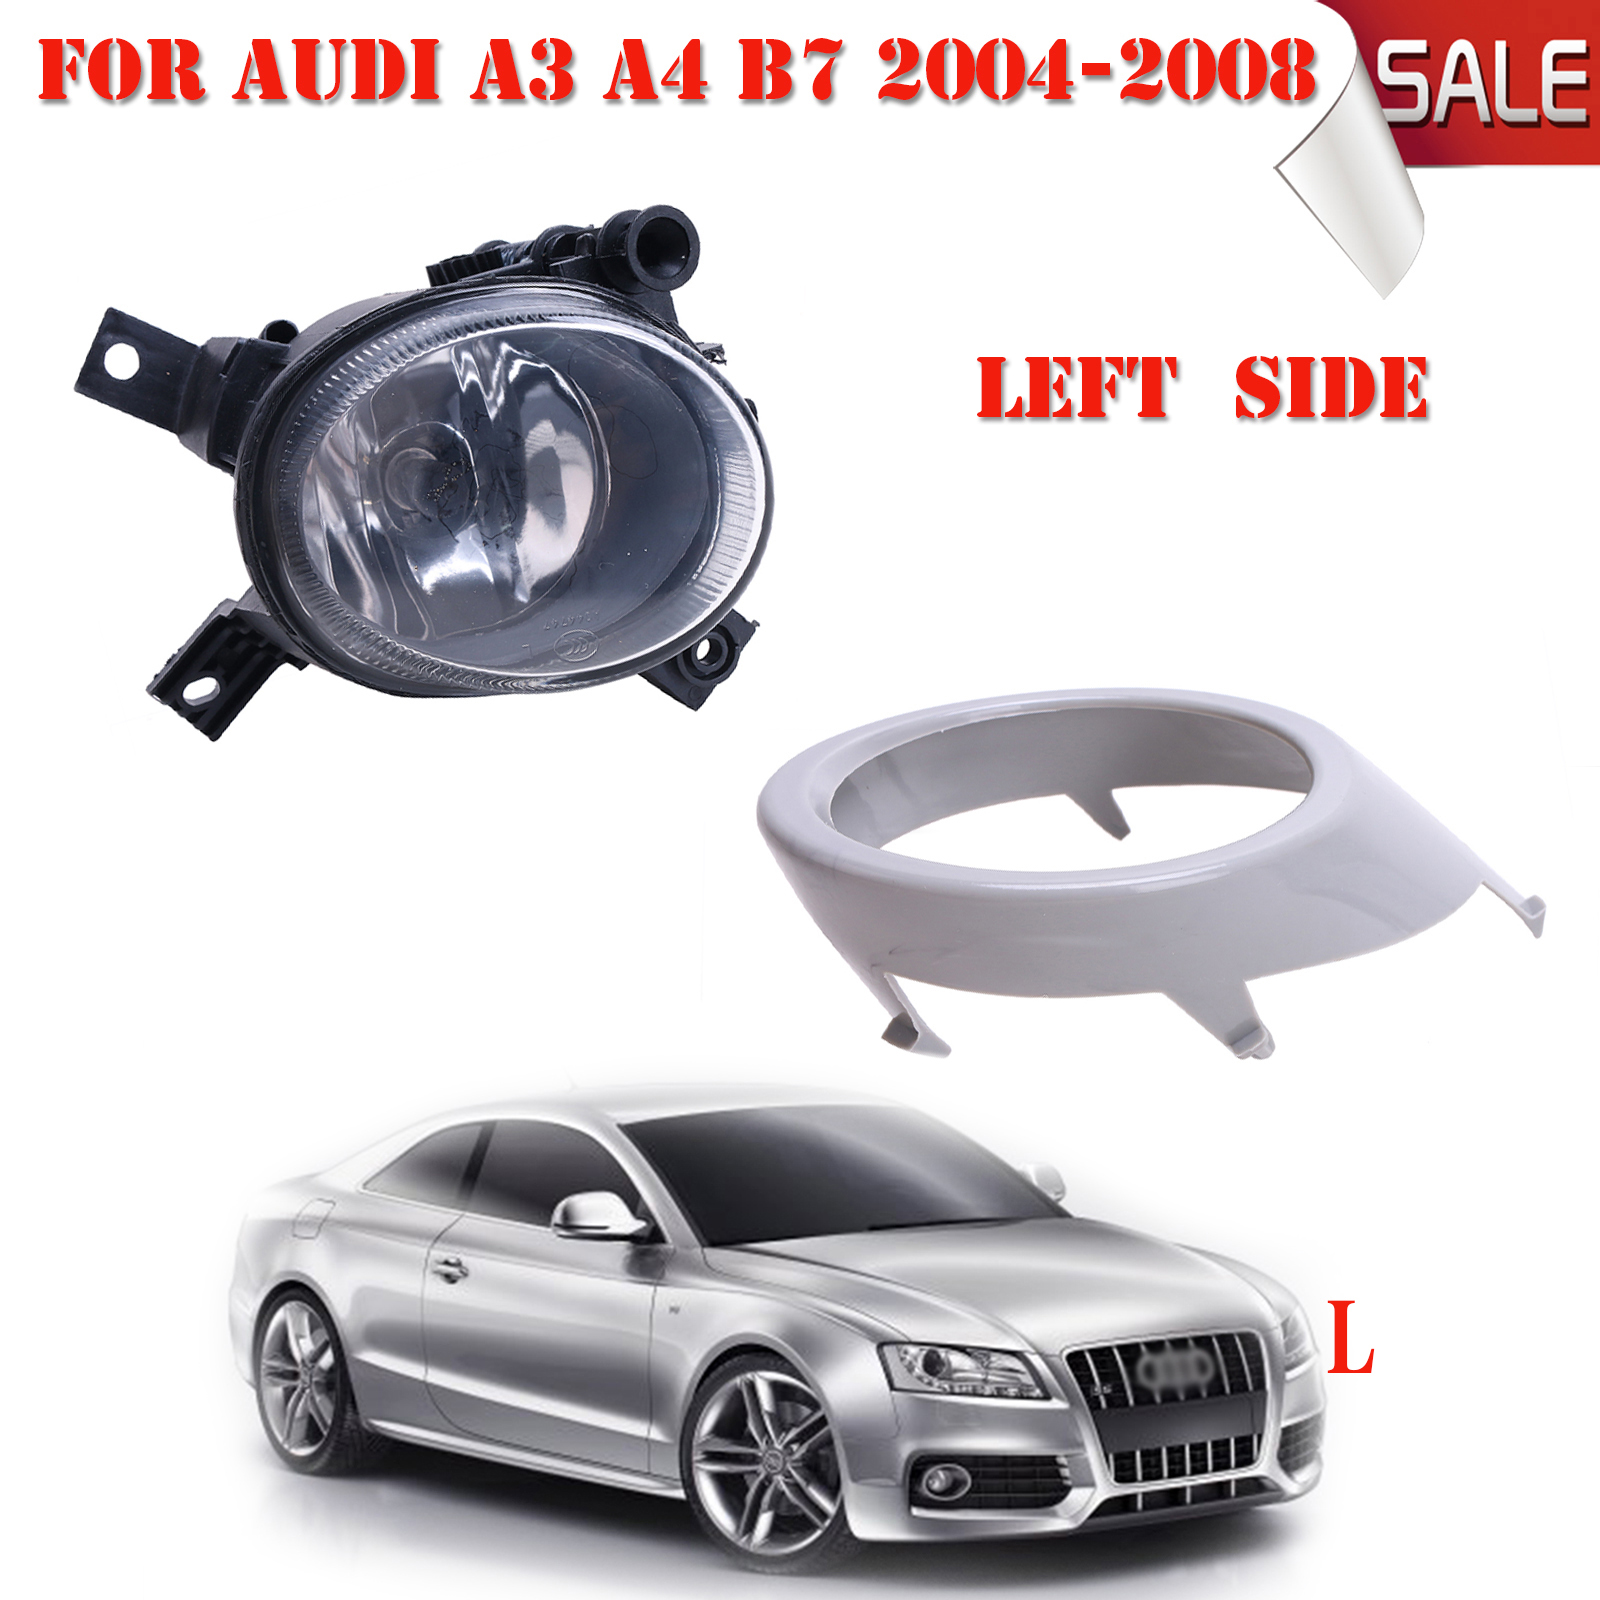 Left Side Front Bumper Grill Cover with Fog Light Lamp For Audi A3 A4 B7 2004-2008 with Bulbs H11 Car Accessories #P327 for vw touareg 2003 2004 2005 2006 2007 2008 2009 2010 left side car styling halogen front bumper fog lamp fog light with bulb